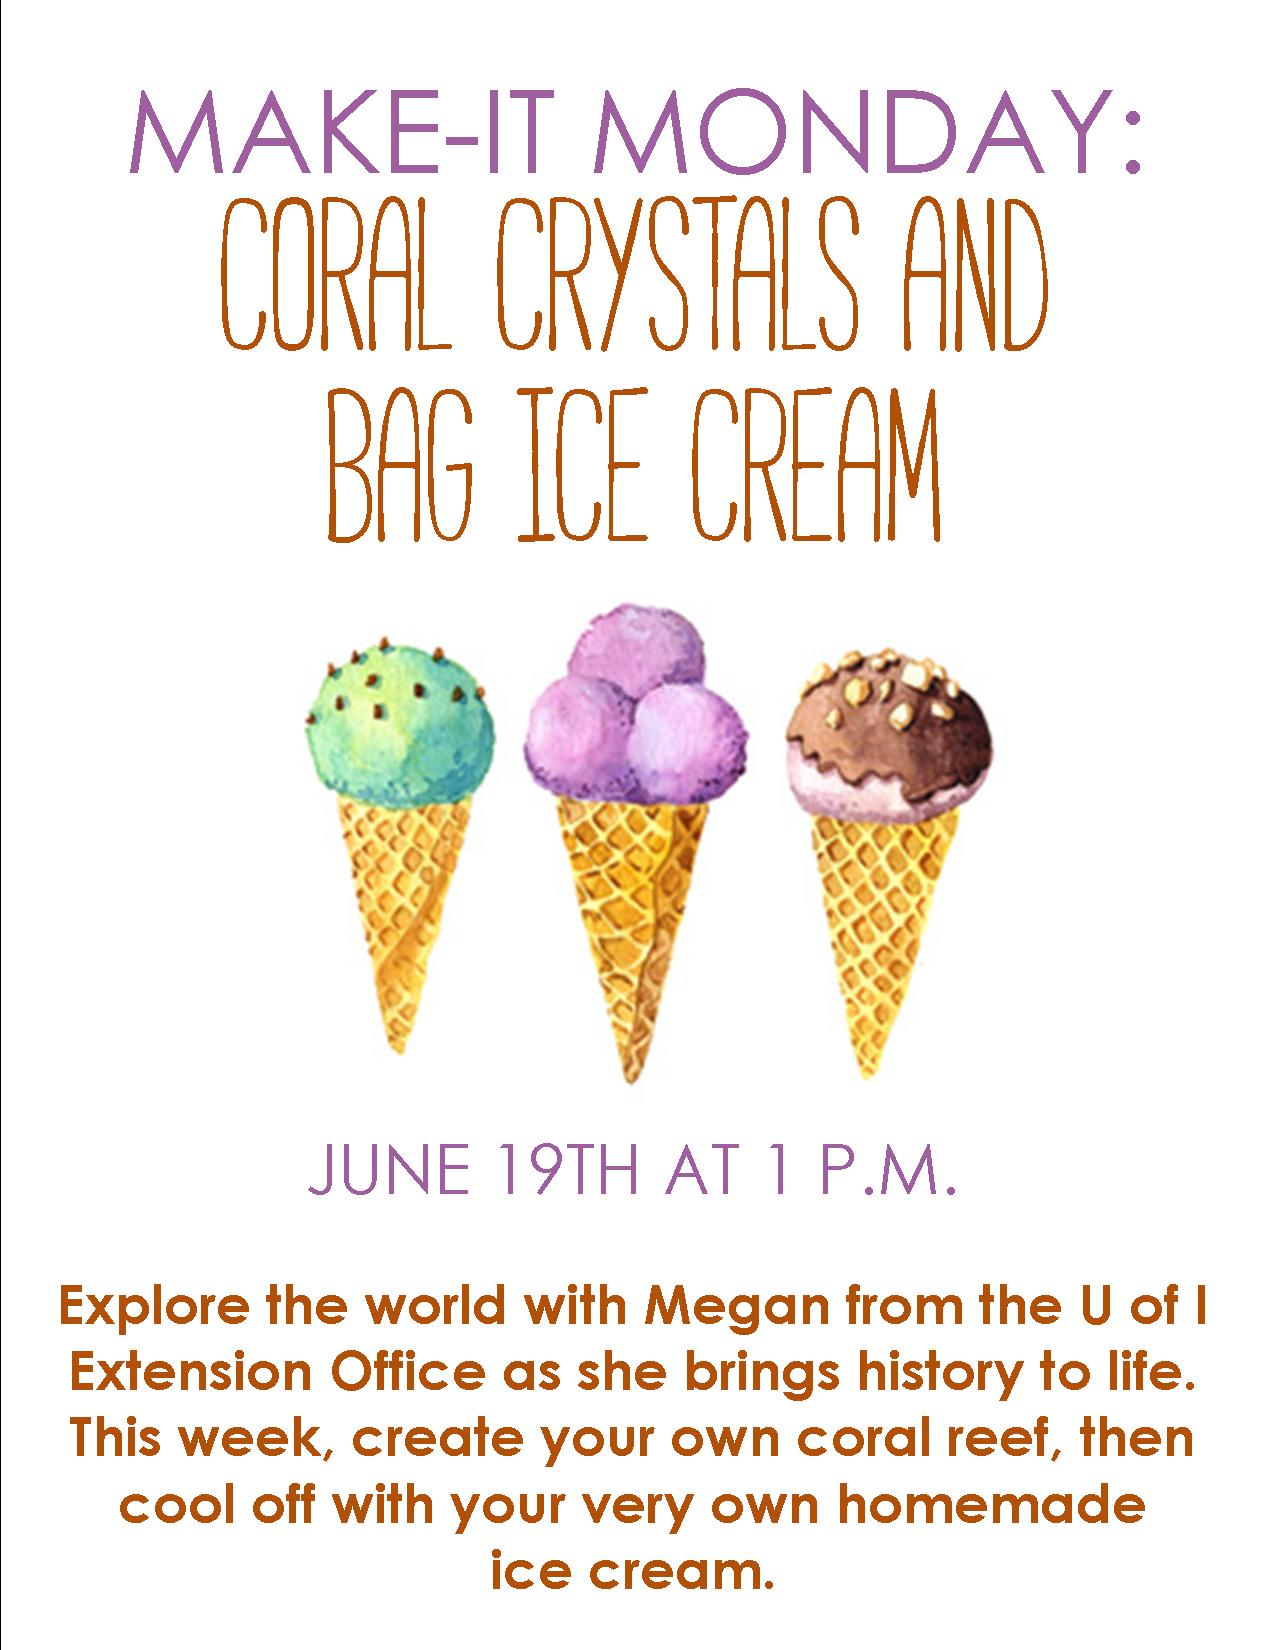 Coral Crystals and Bag Ice Cream